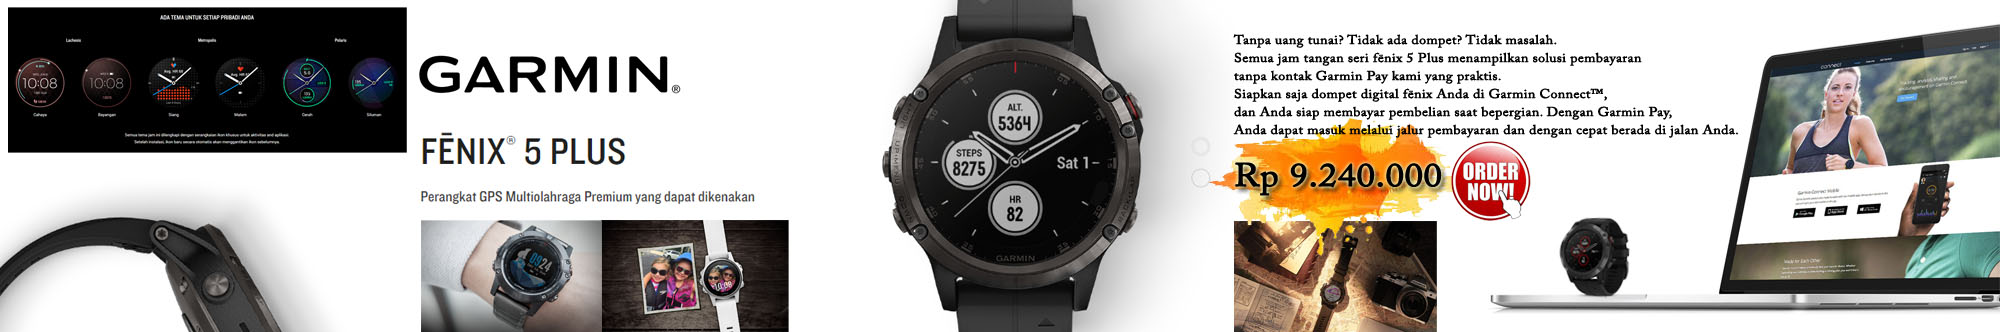 Garmin Fenix 5 Plus // Upload 16 Nov 2019